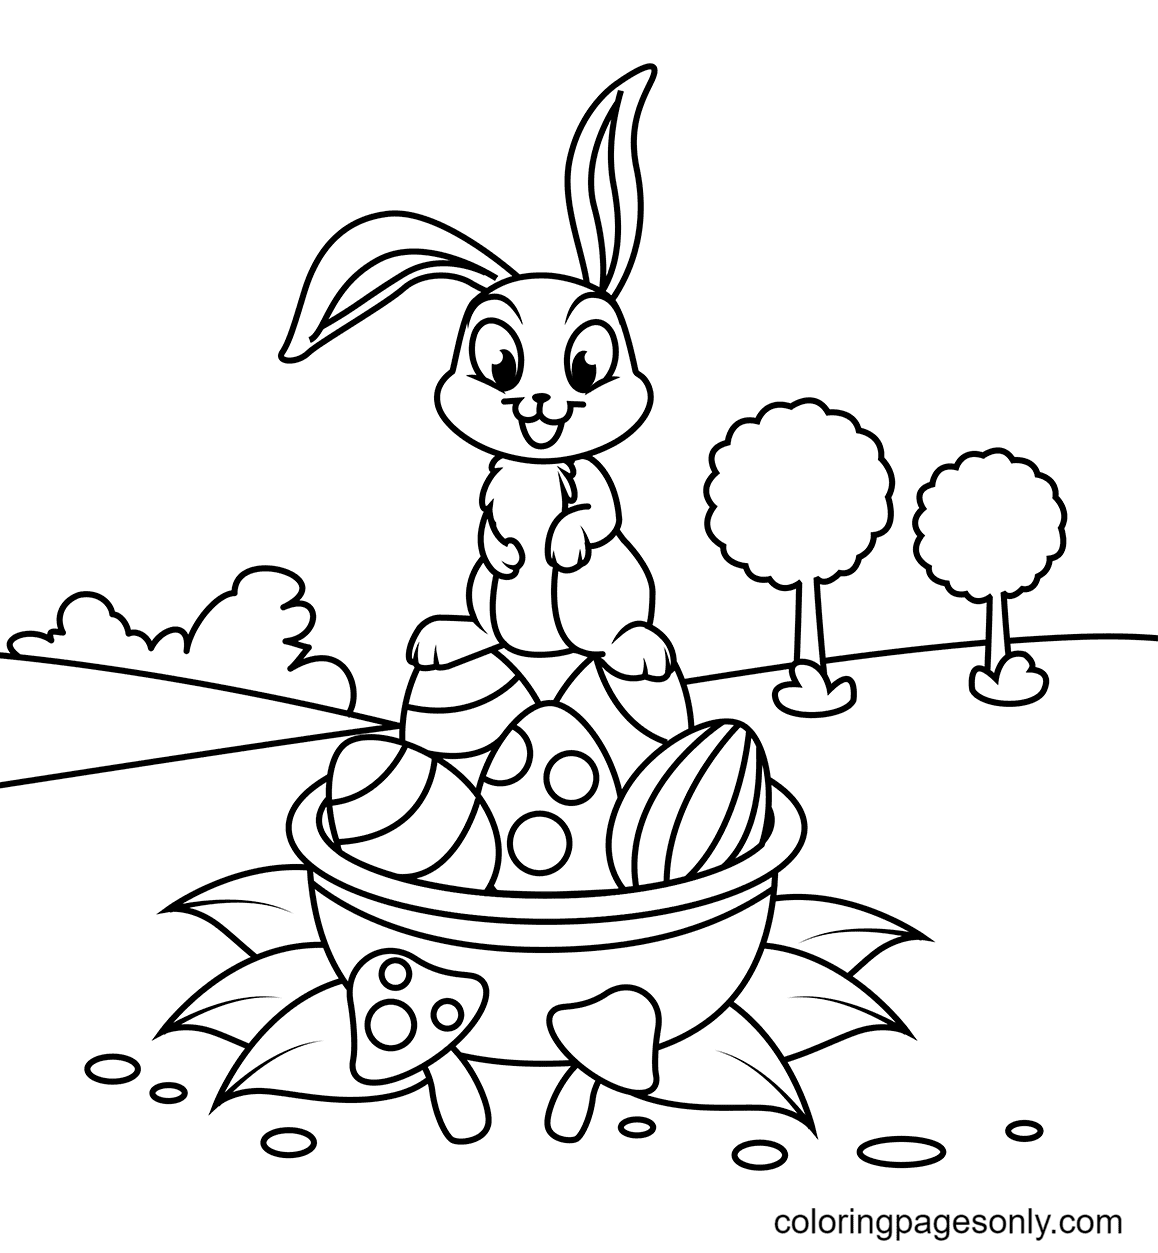 Cute Rabbit on Easter Basket Coloring Page